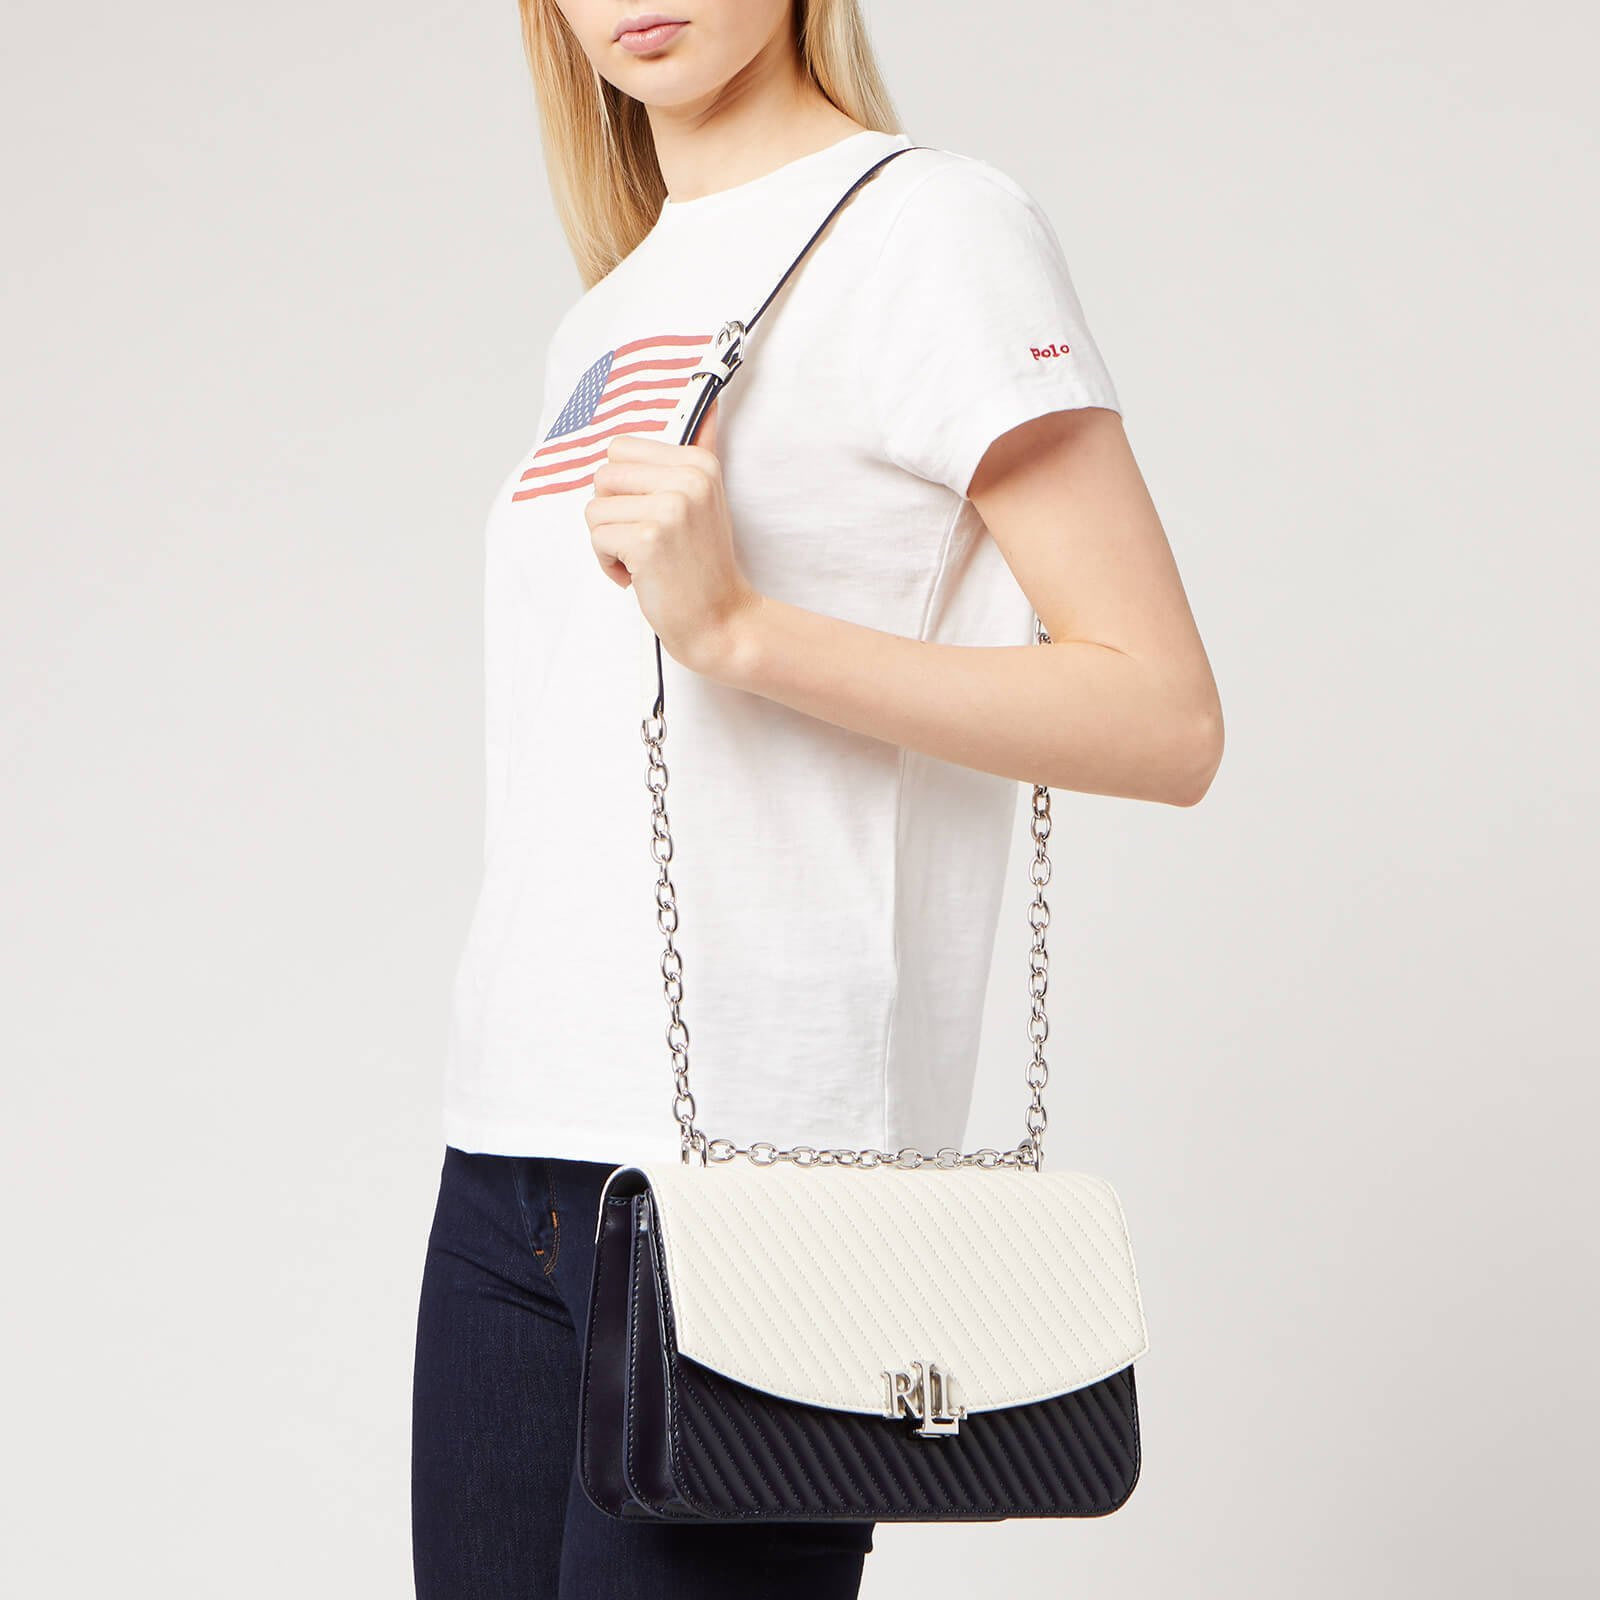 代購Lauren Ralph Lauren Madison Large 27 Cross Body Bag優雅信封包